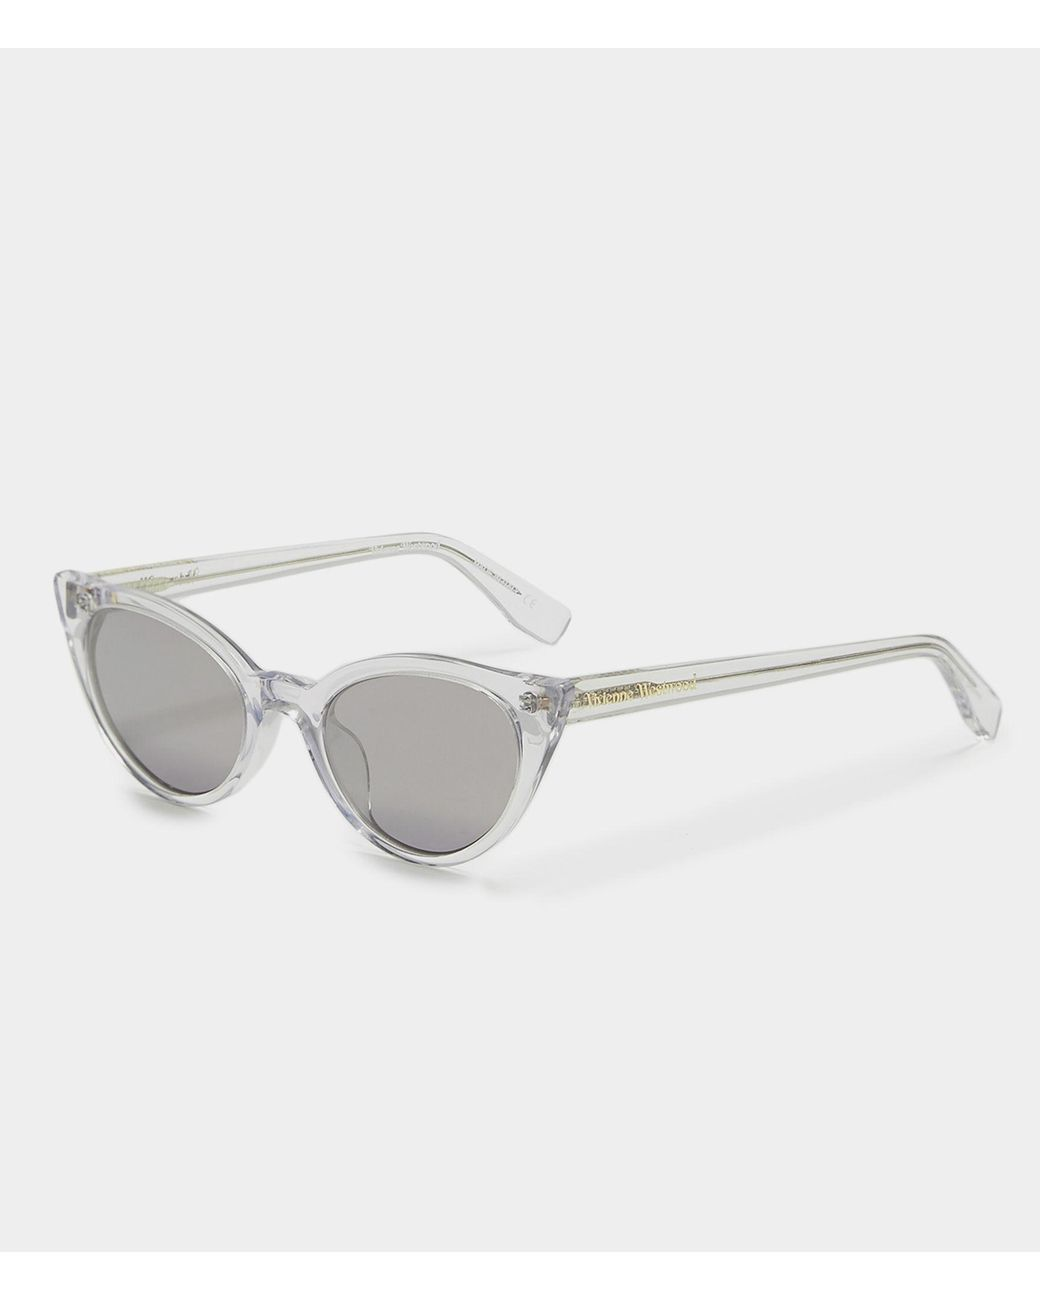 6cc4714f7c5 Vivienne Westwood Clear Cat-eye Sunglasses in Gray - Lyst